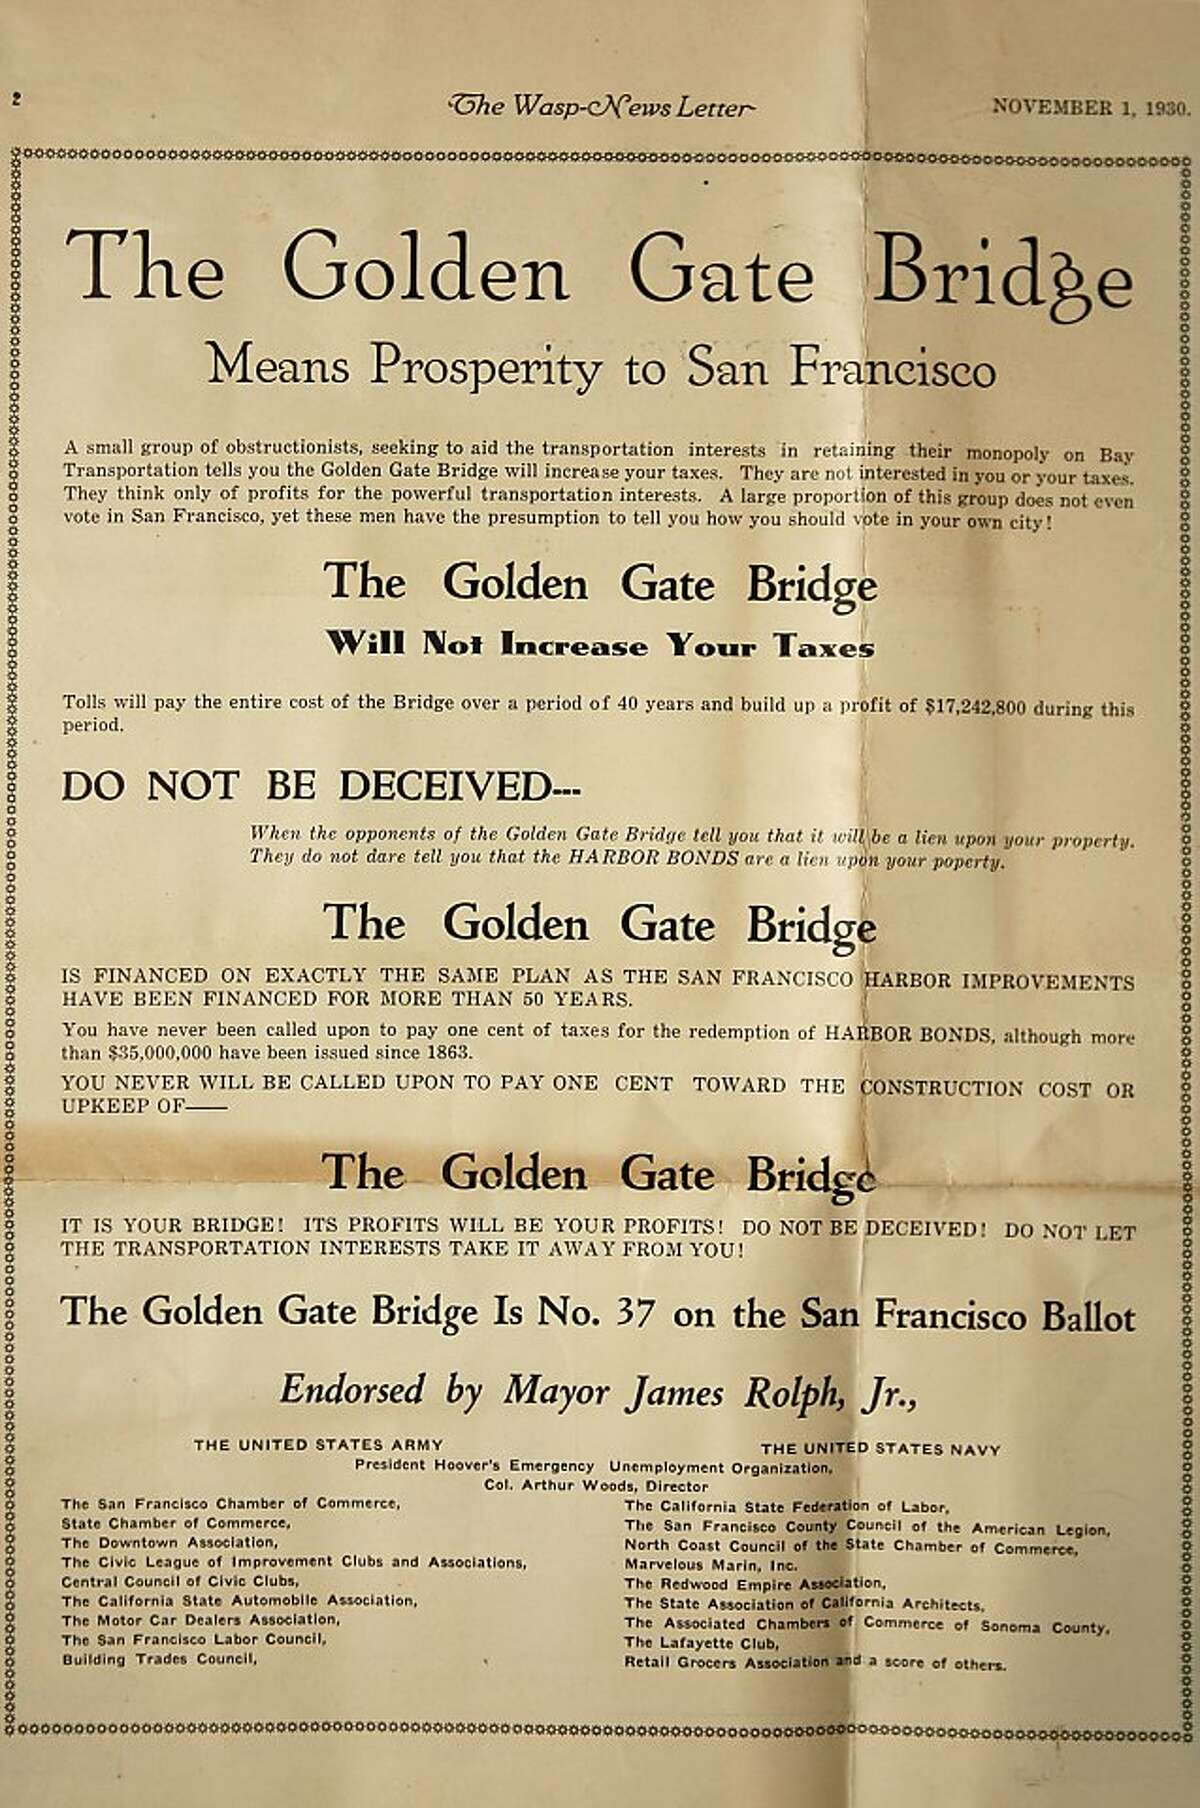 Though the bond measure to bill the Golden Gate Bridge was approved by a large majority, the proposal was attacked during the campaign by a range of interest groups.